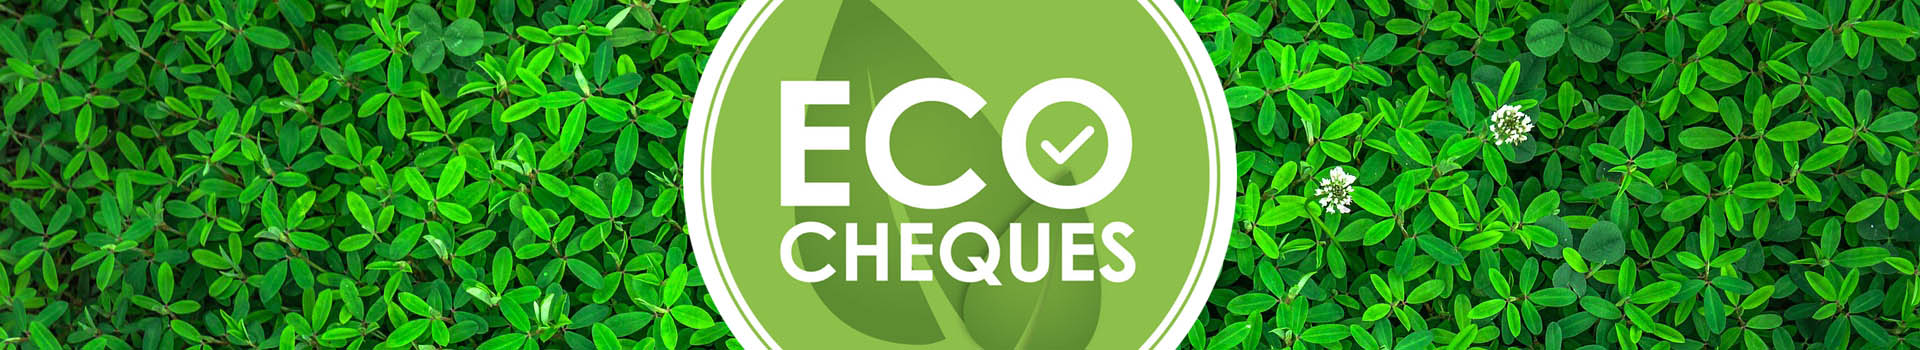 Ecocheques ecologisch